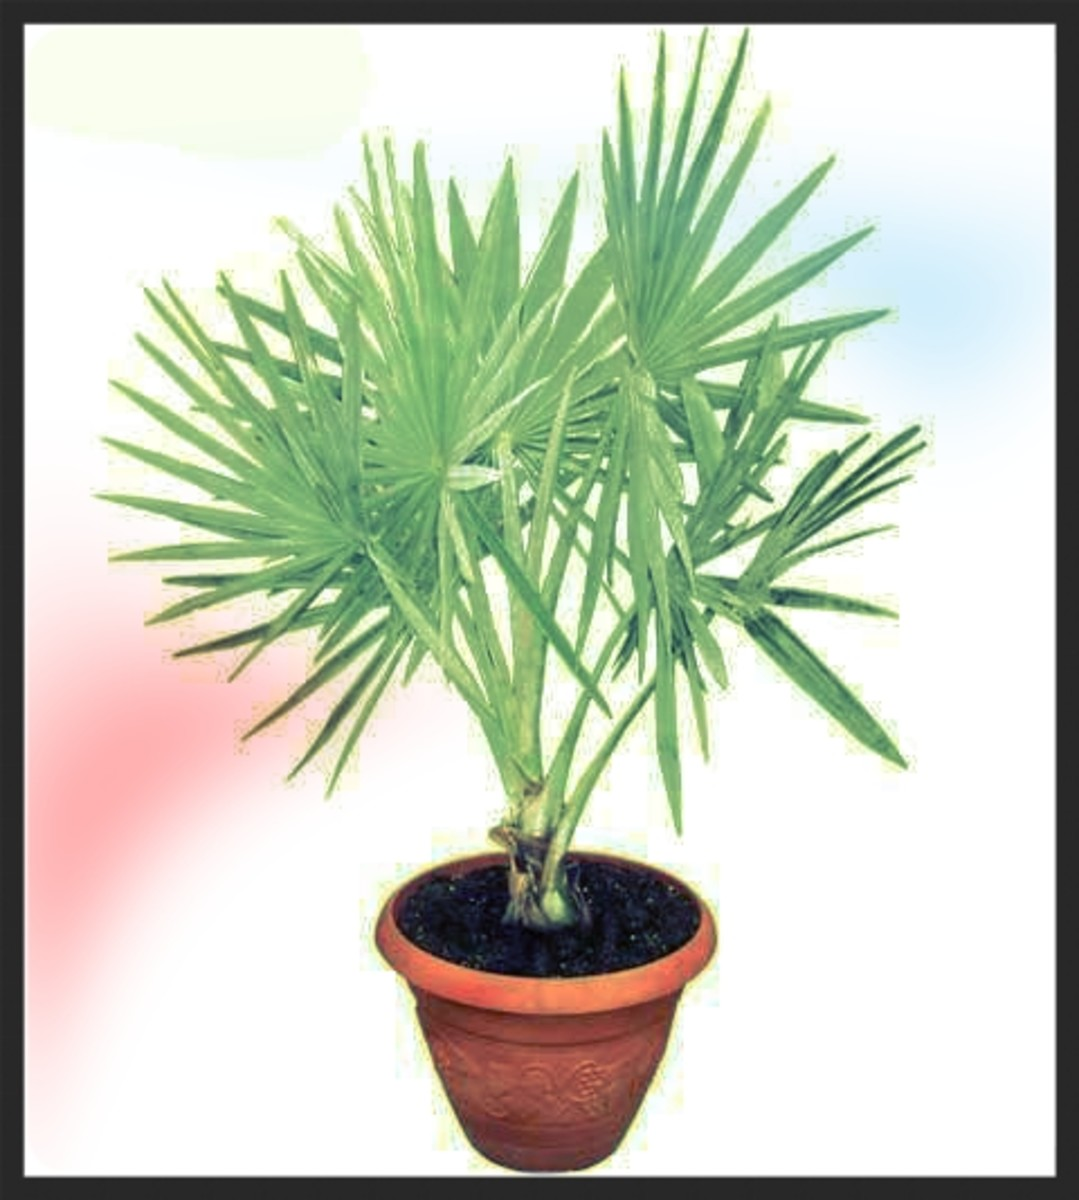 Bismarck Palms are known for their silvery fronds which grow vertically from toothed petioles.